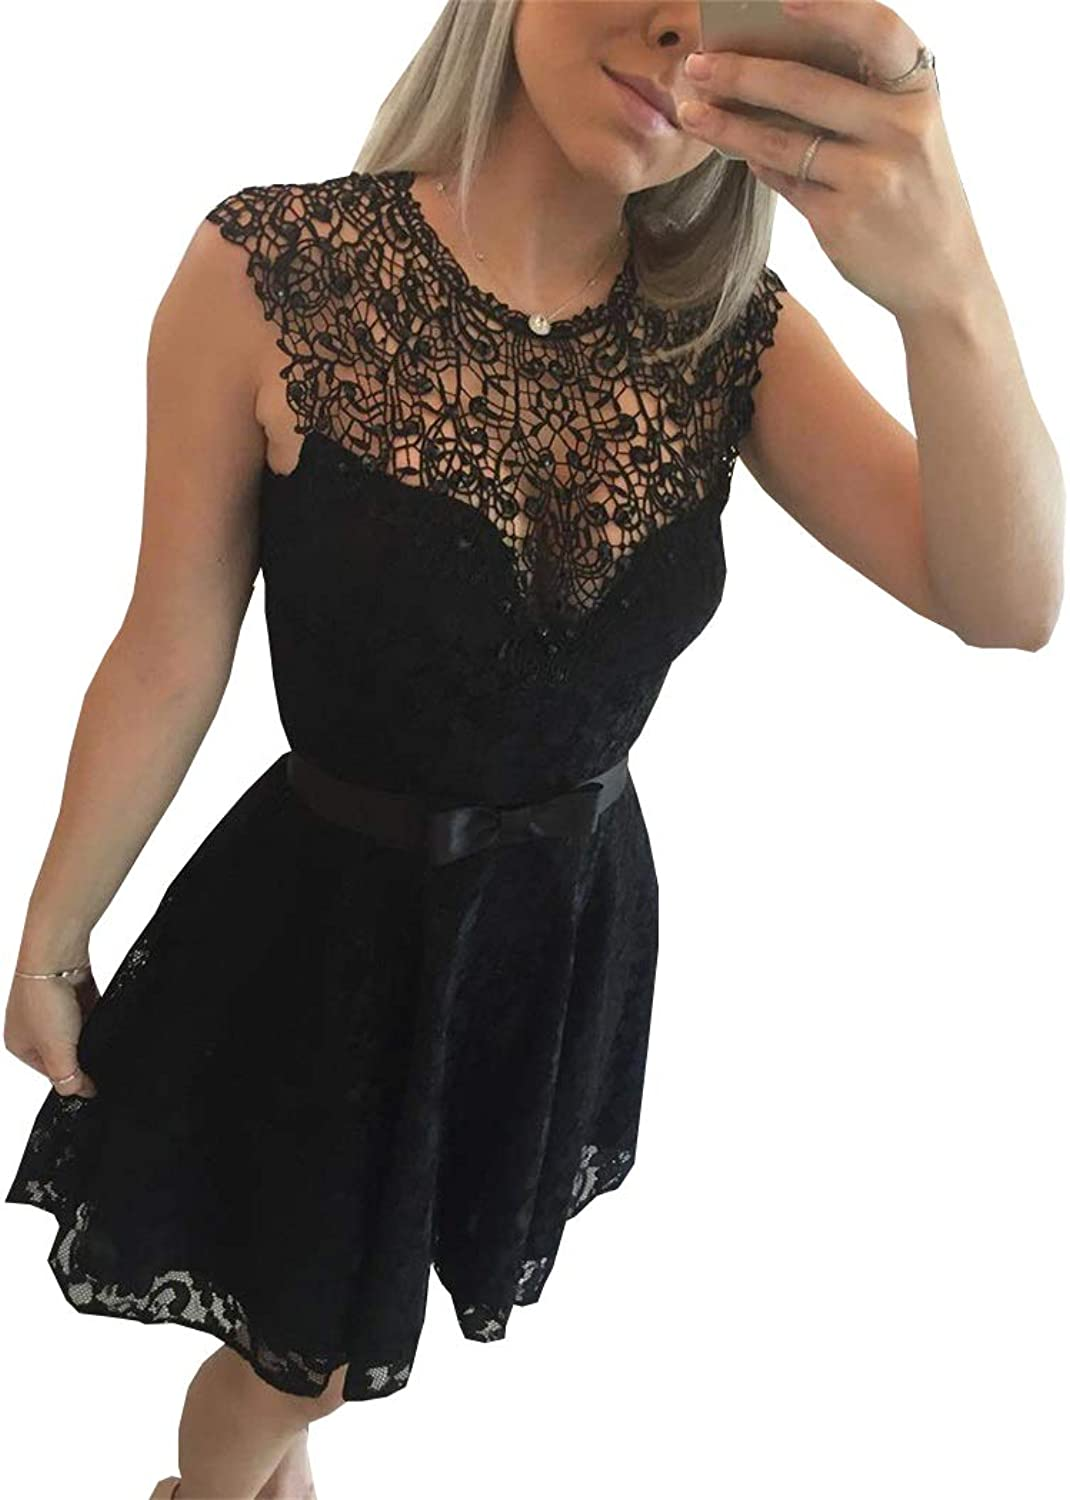 Ellystar 2017 Hot Black Short Homecoming Dresses A Line Jewel Lace Prom Gowns